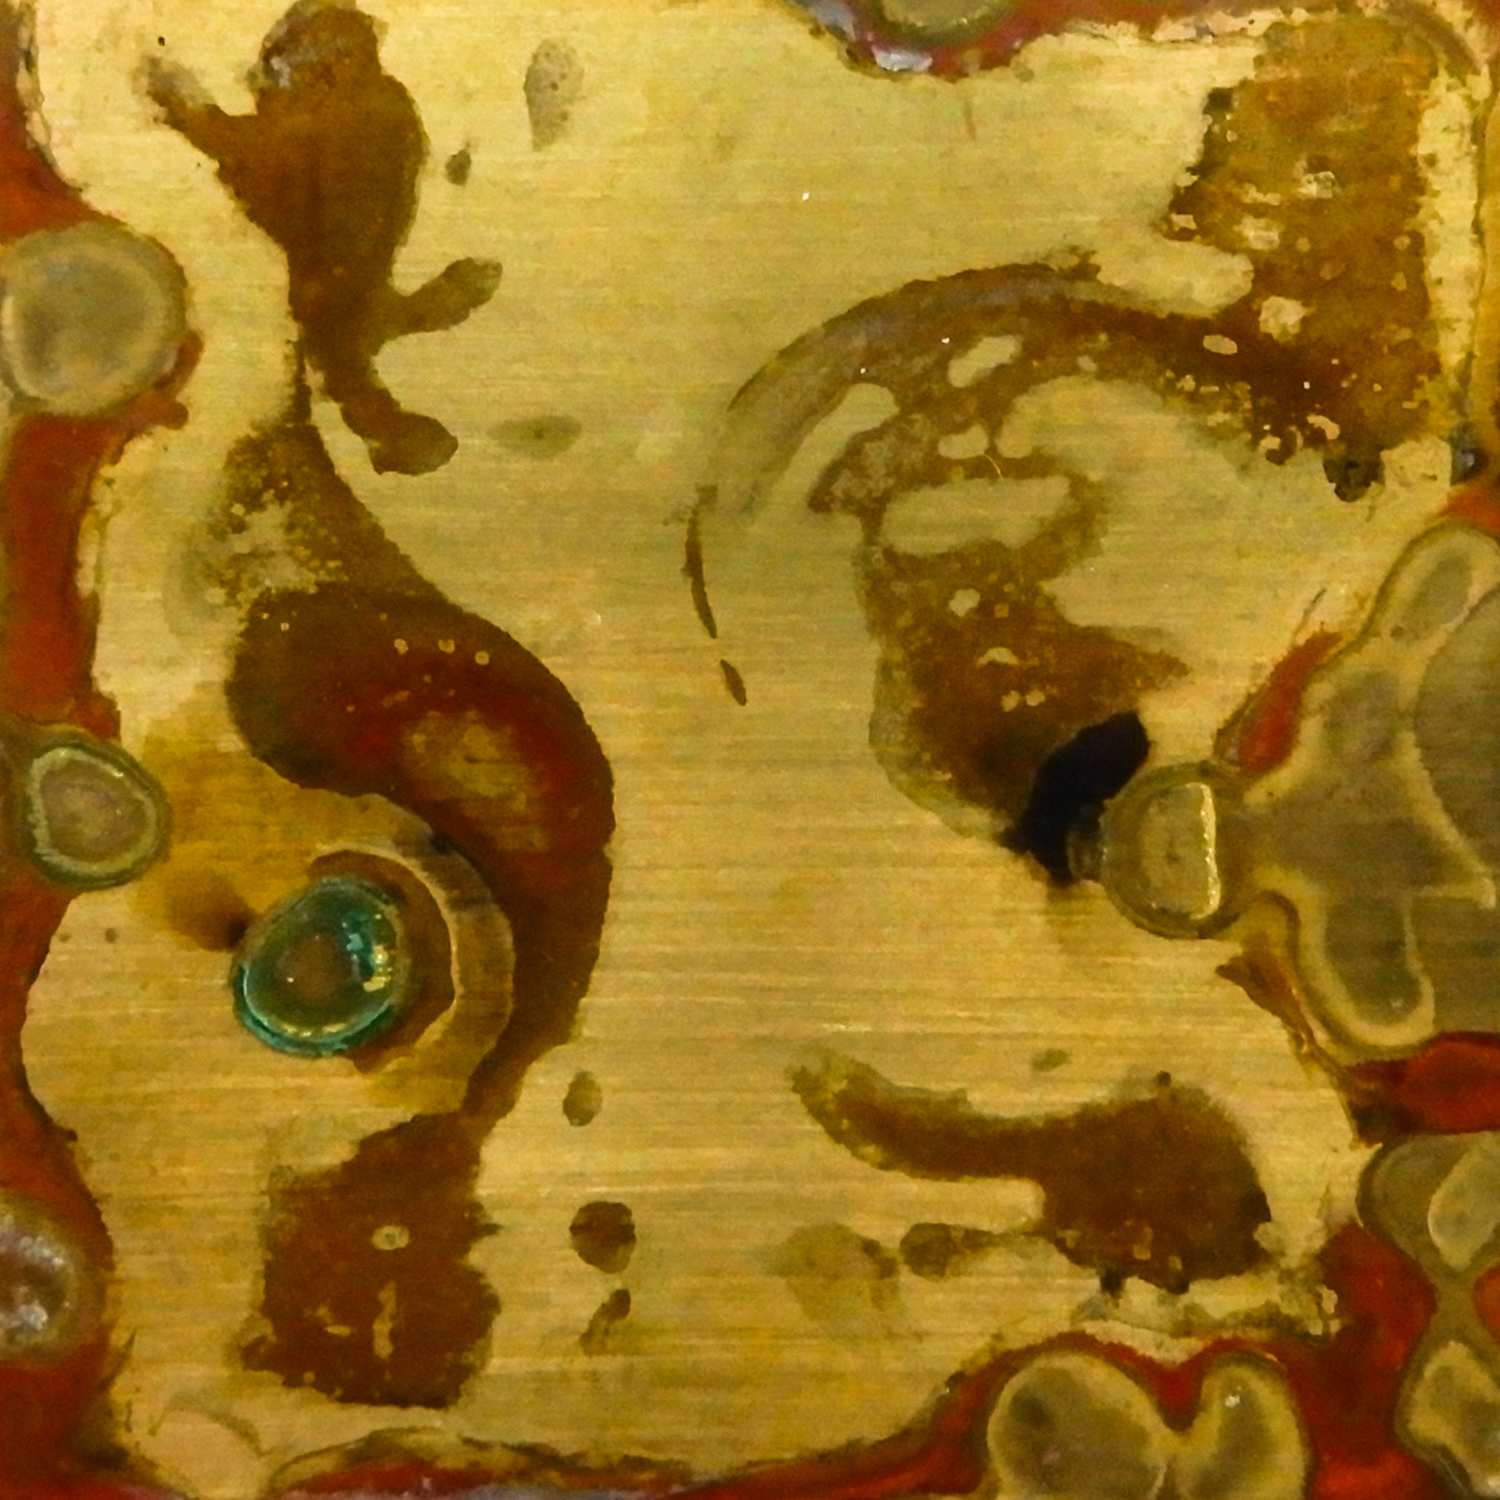 Annealed and sanded by sandpaper. Soaked in soy sauce for ten days. Size: 2 x 2 in